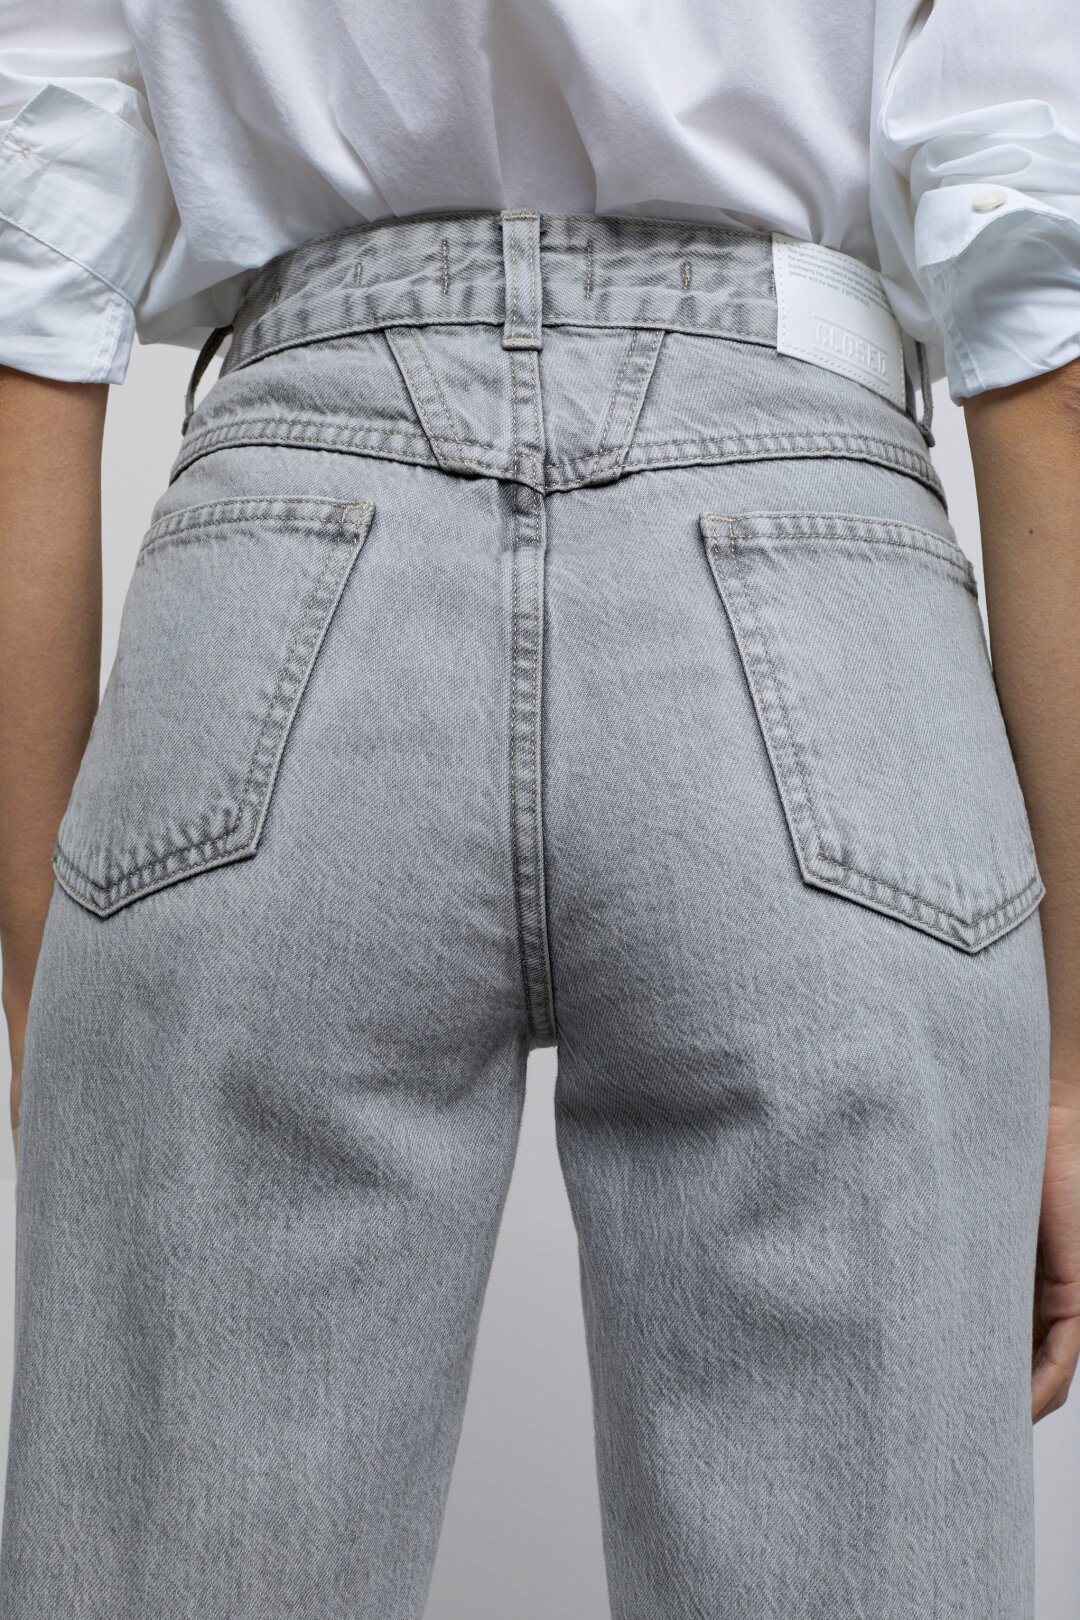 C88002-15C-43-Pedal Pusher, Closed, Jeans